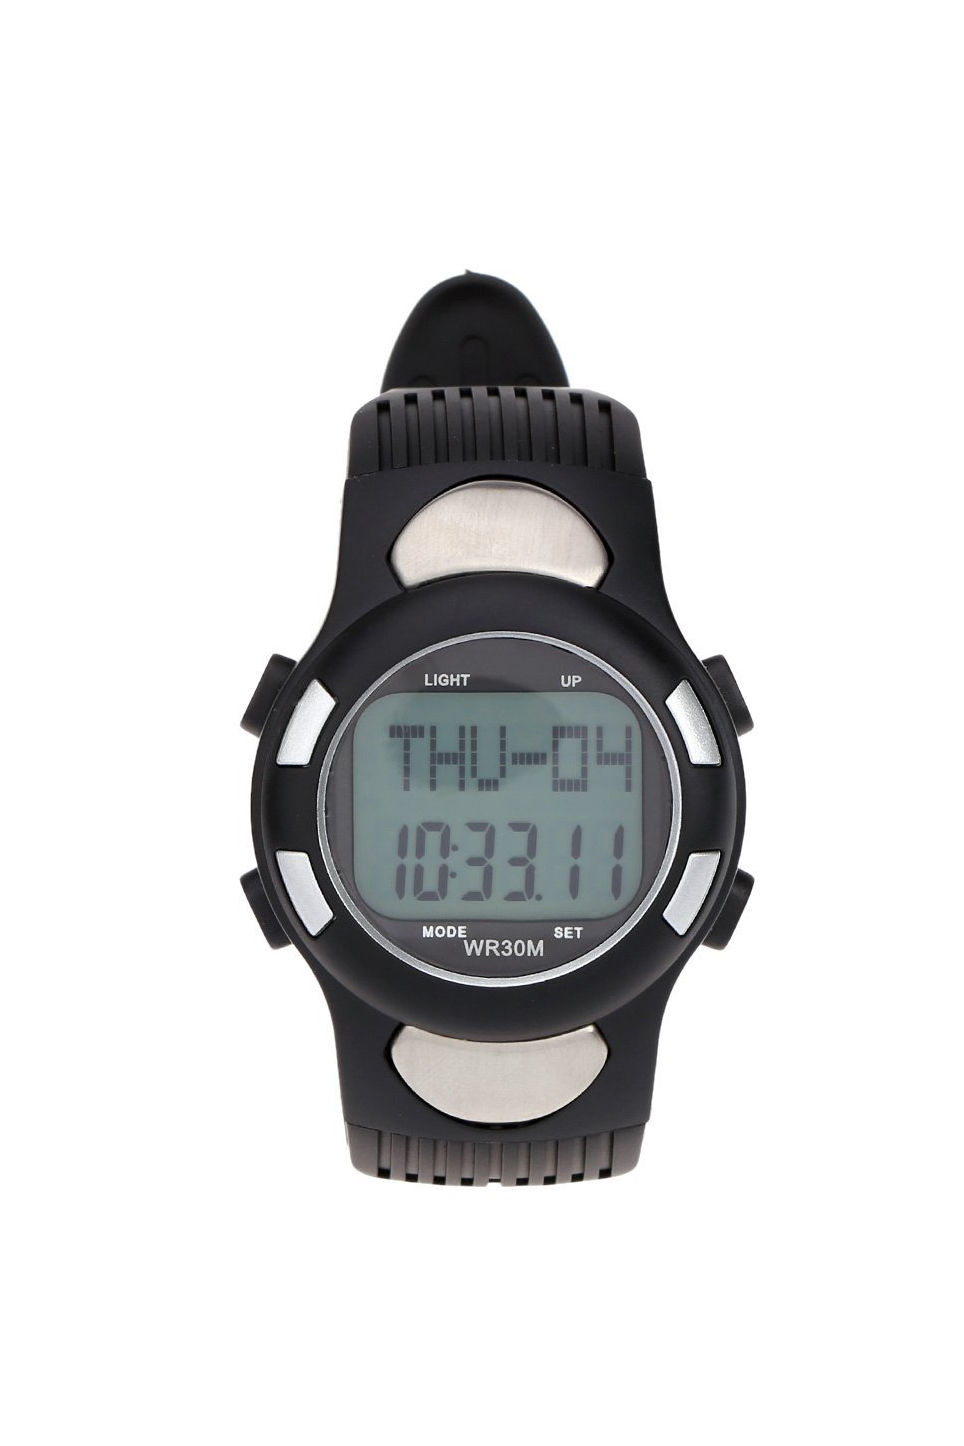 SZ-LGFM-3ATM Water-resistant Sports Pulse Heart Rate Monitor Fitness Exercise Watch Pedometer Calorie Stopwatch Outdoor Cycling